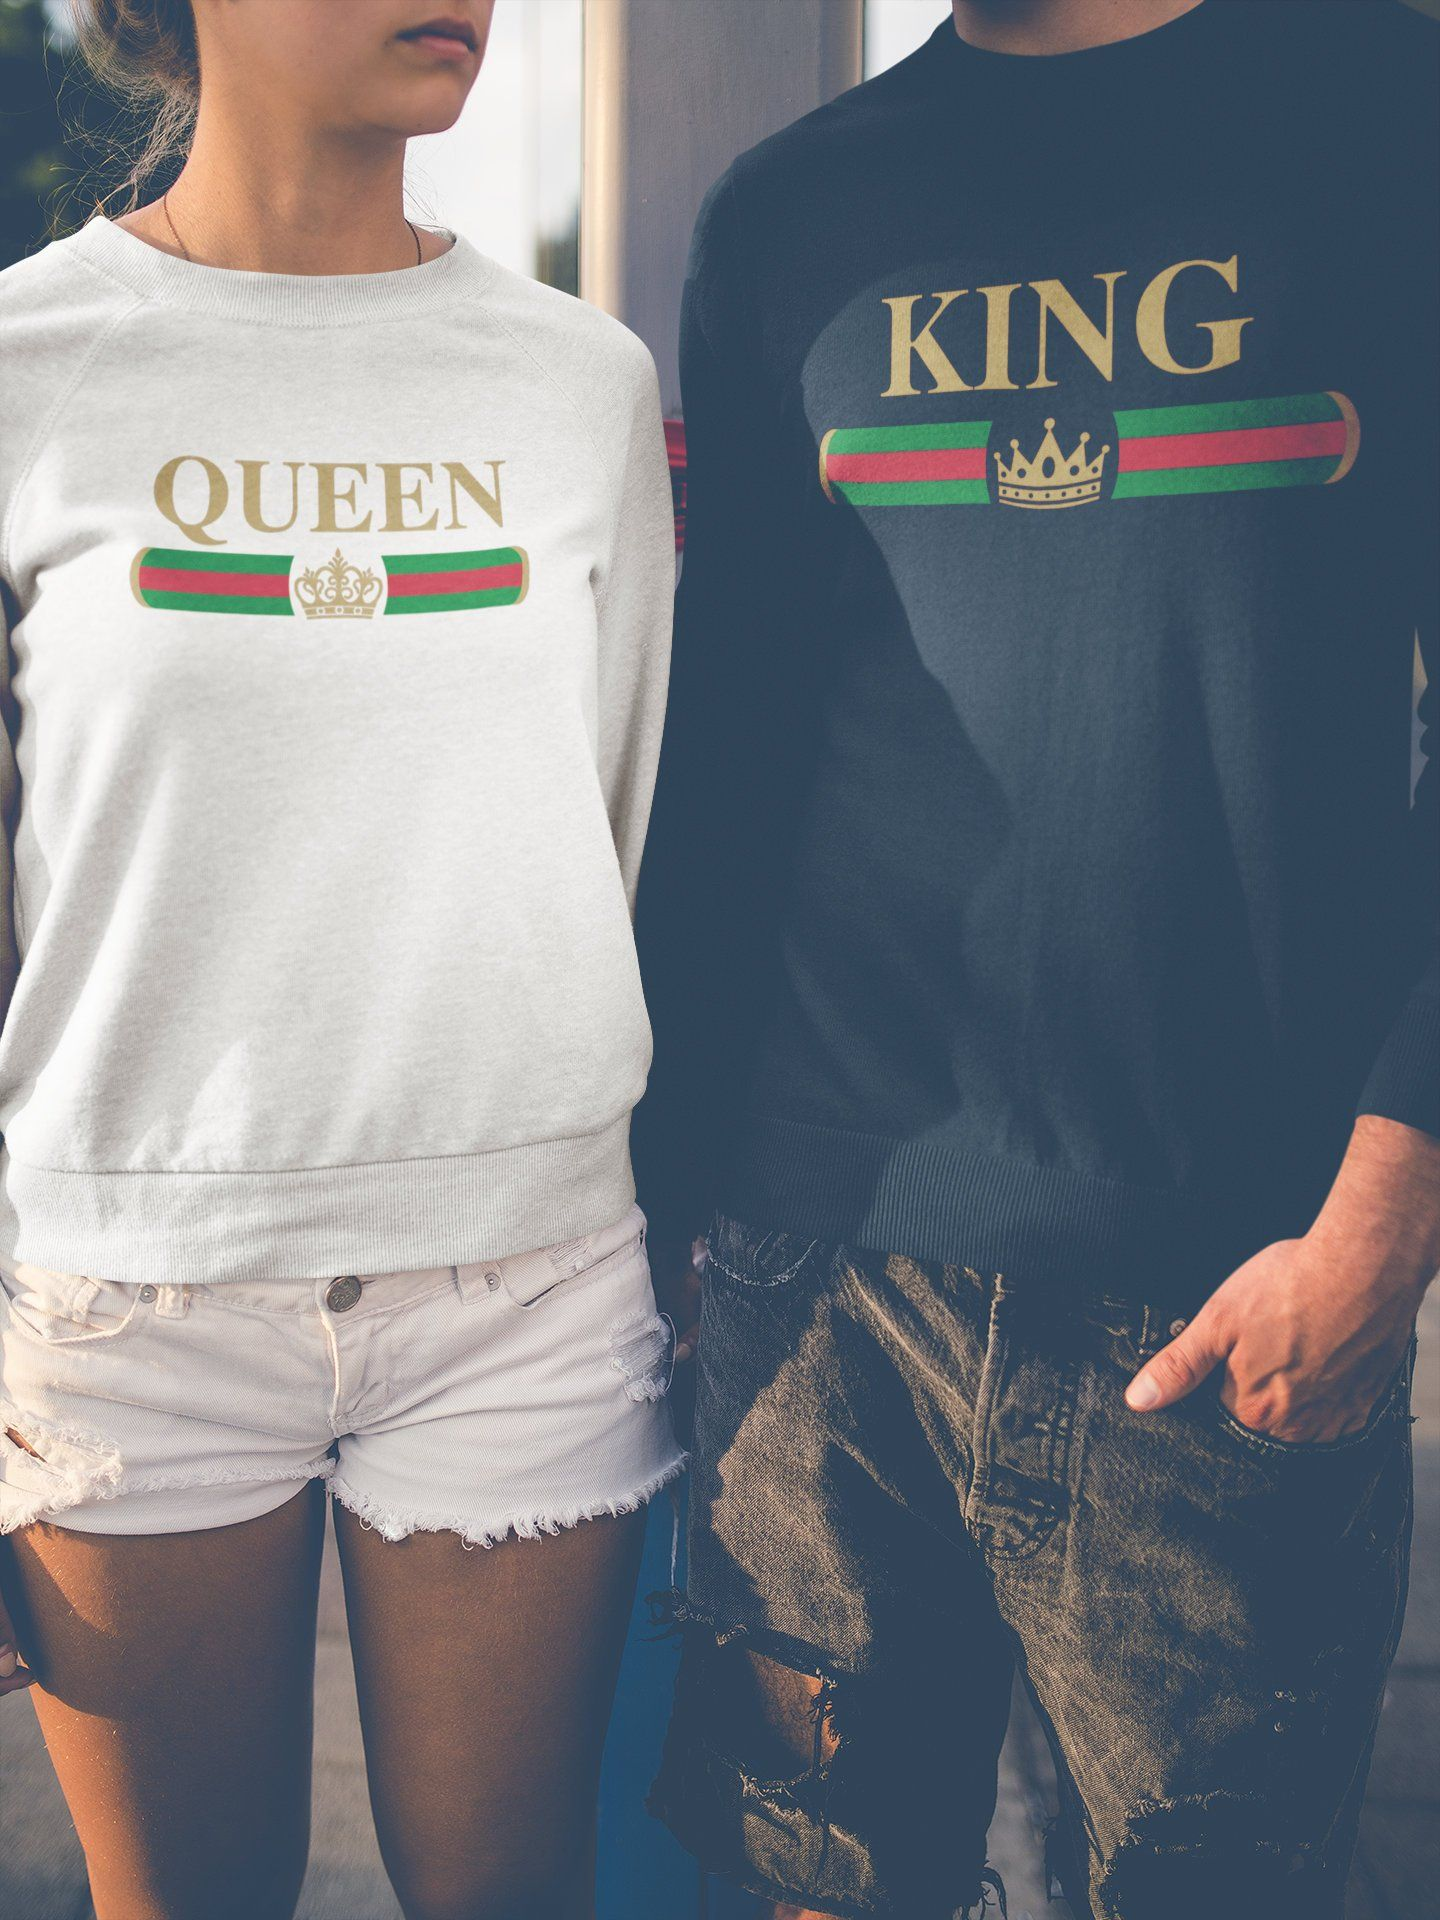 afb71a9897 Best from my #etsy shop: King Queen Couples Sweatshirts! #matchingshirts  #coupletshirts